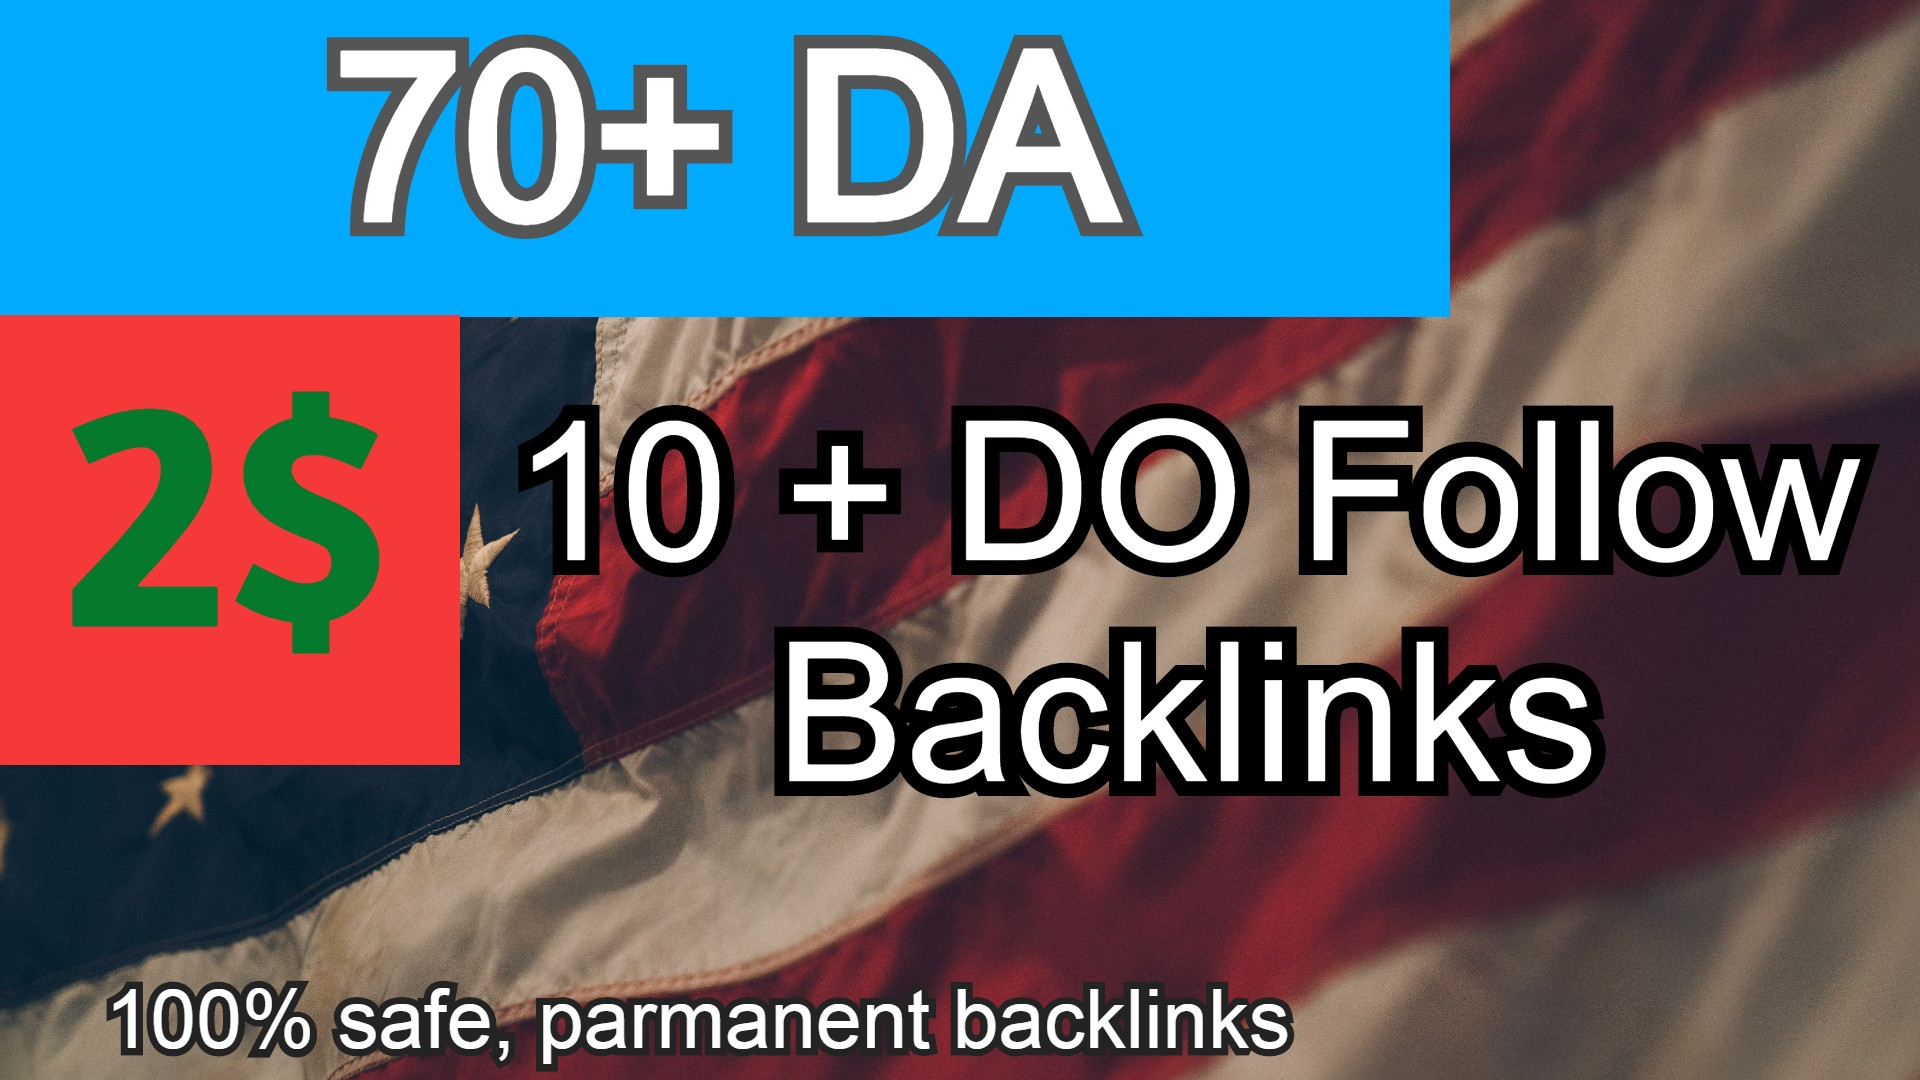 10+ BACKLINKS 70+ DA 35+ PA Manually created Backlinks. GET IT NOW